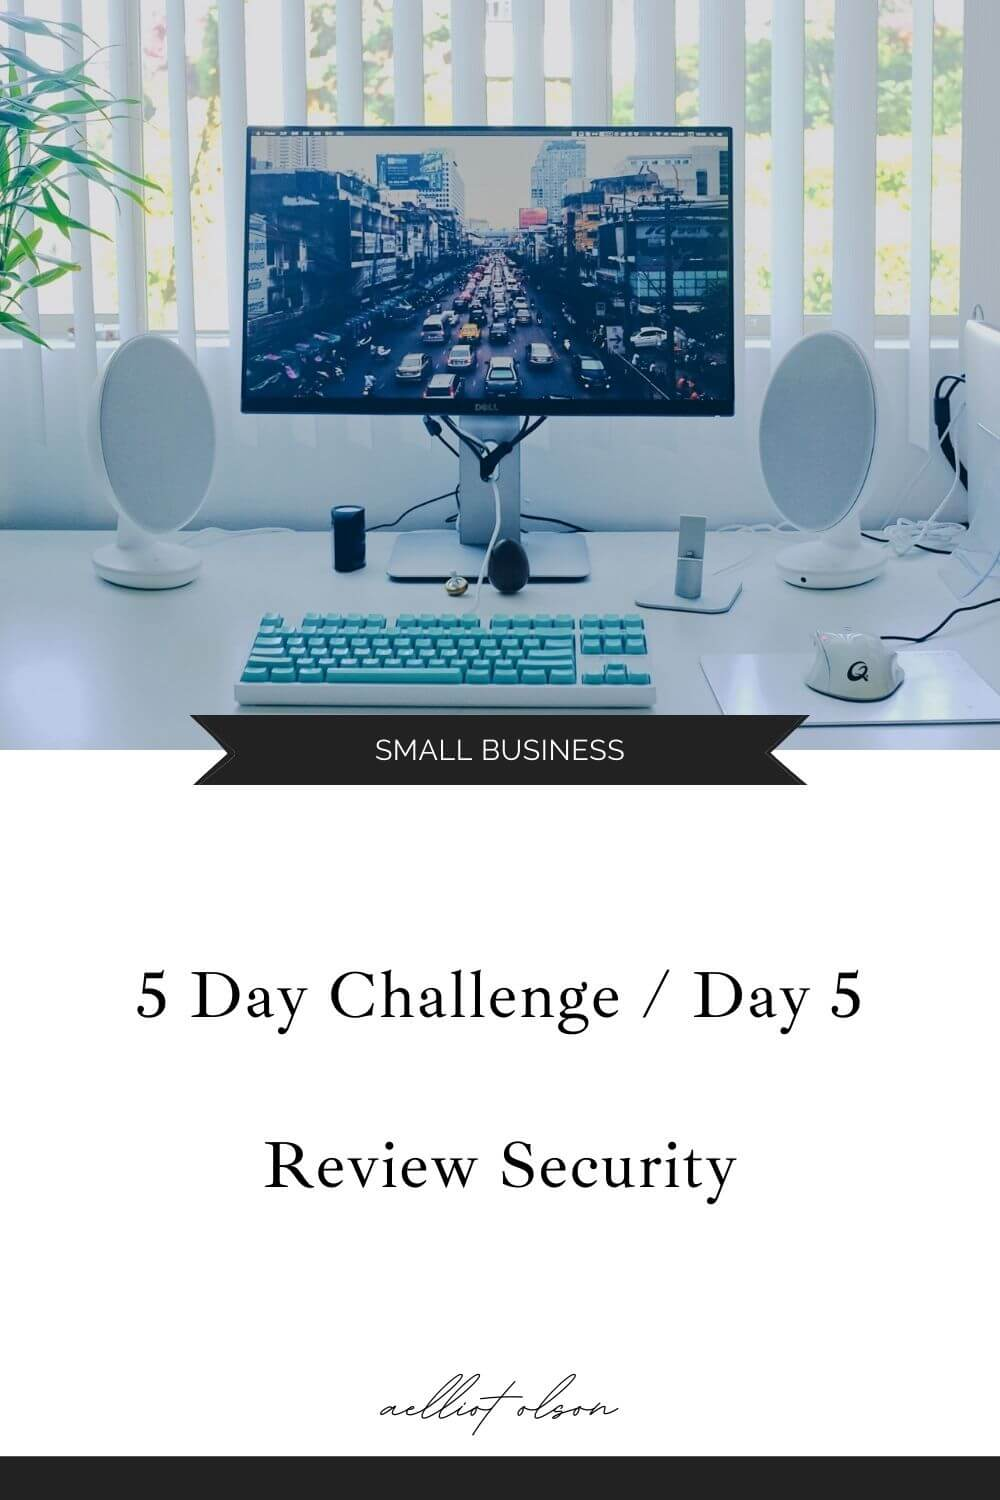 Review website security and protect your data.